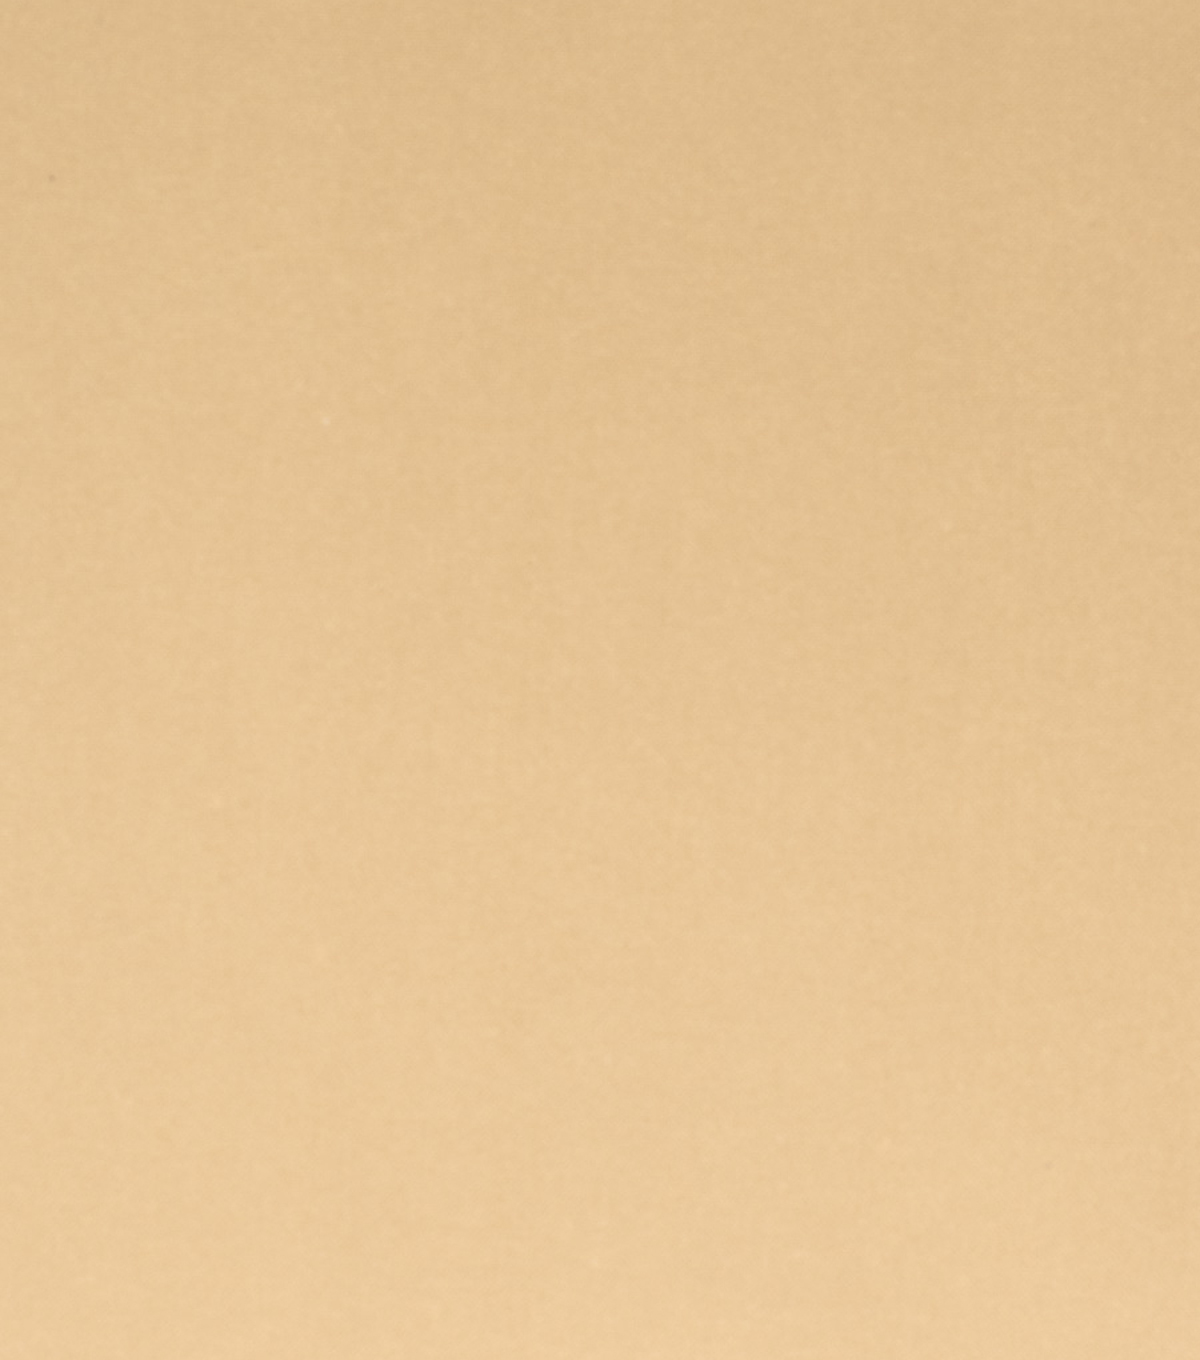 Home Decor 8\u0022x8\u0022 Fabric Swatch-Signature Series Solitaire  Butterscotch